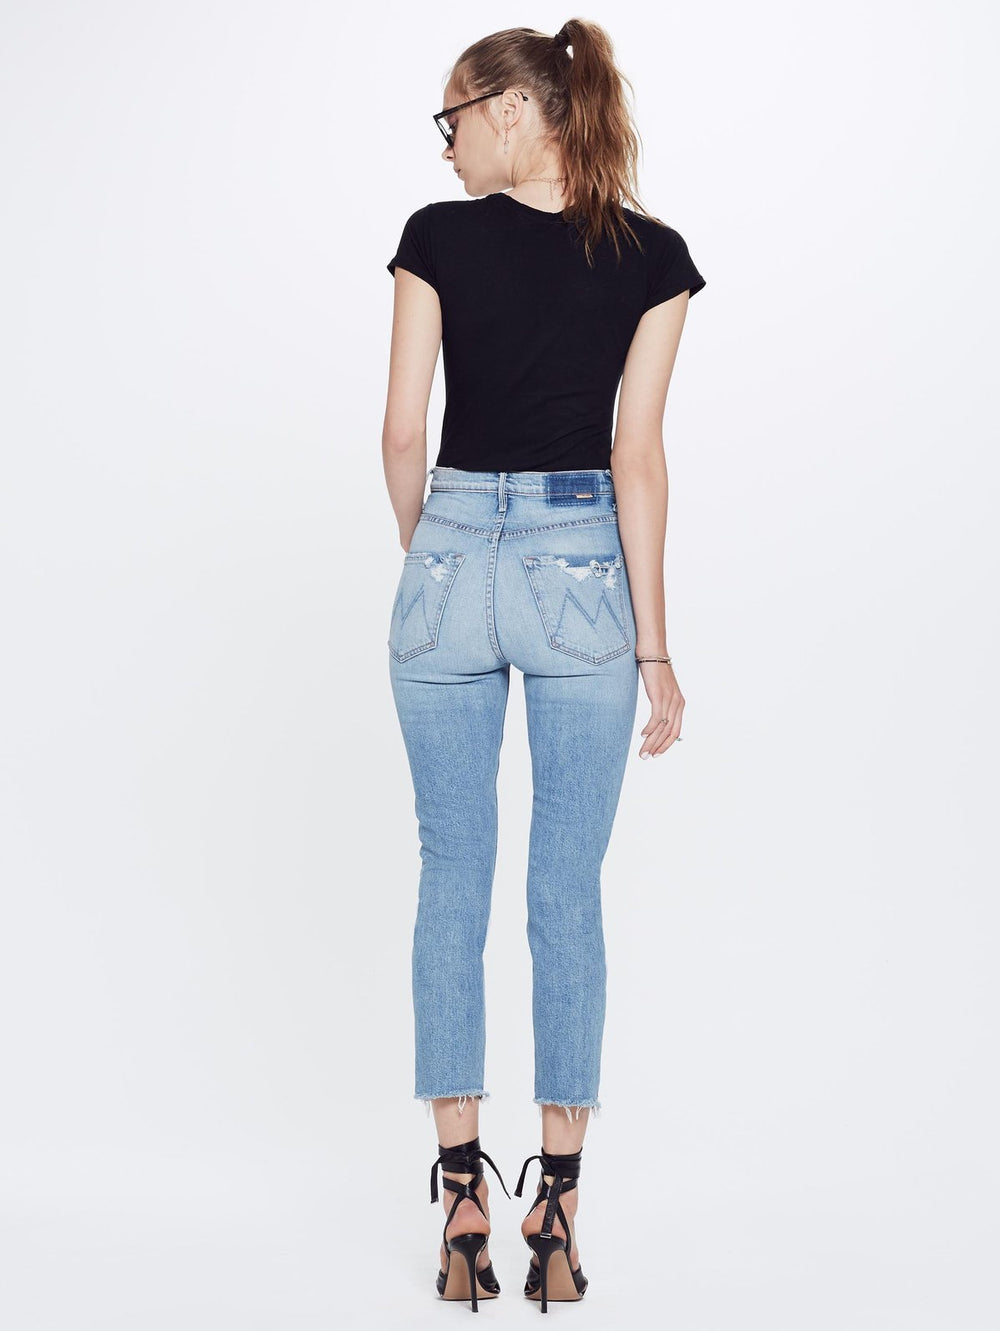 Dazzler Shift Jean - Misbeliever